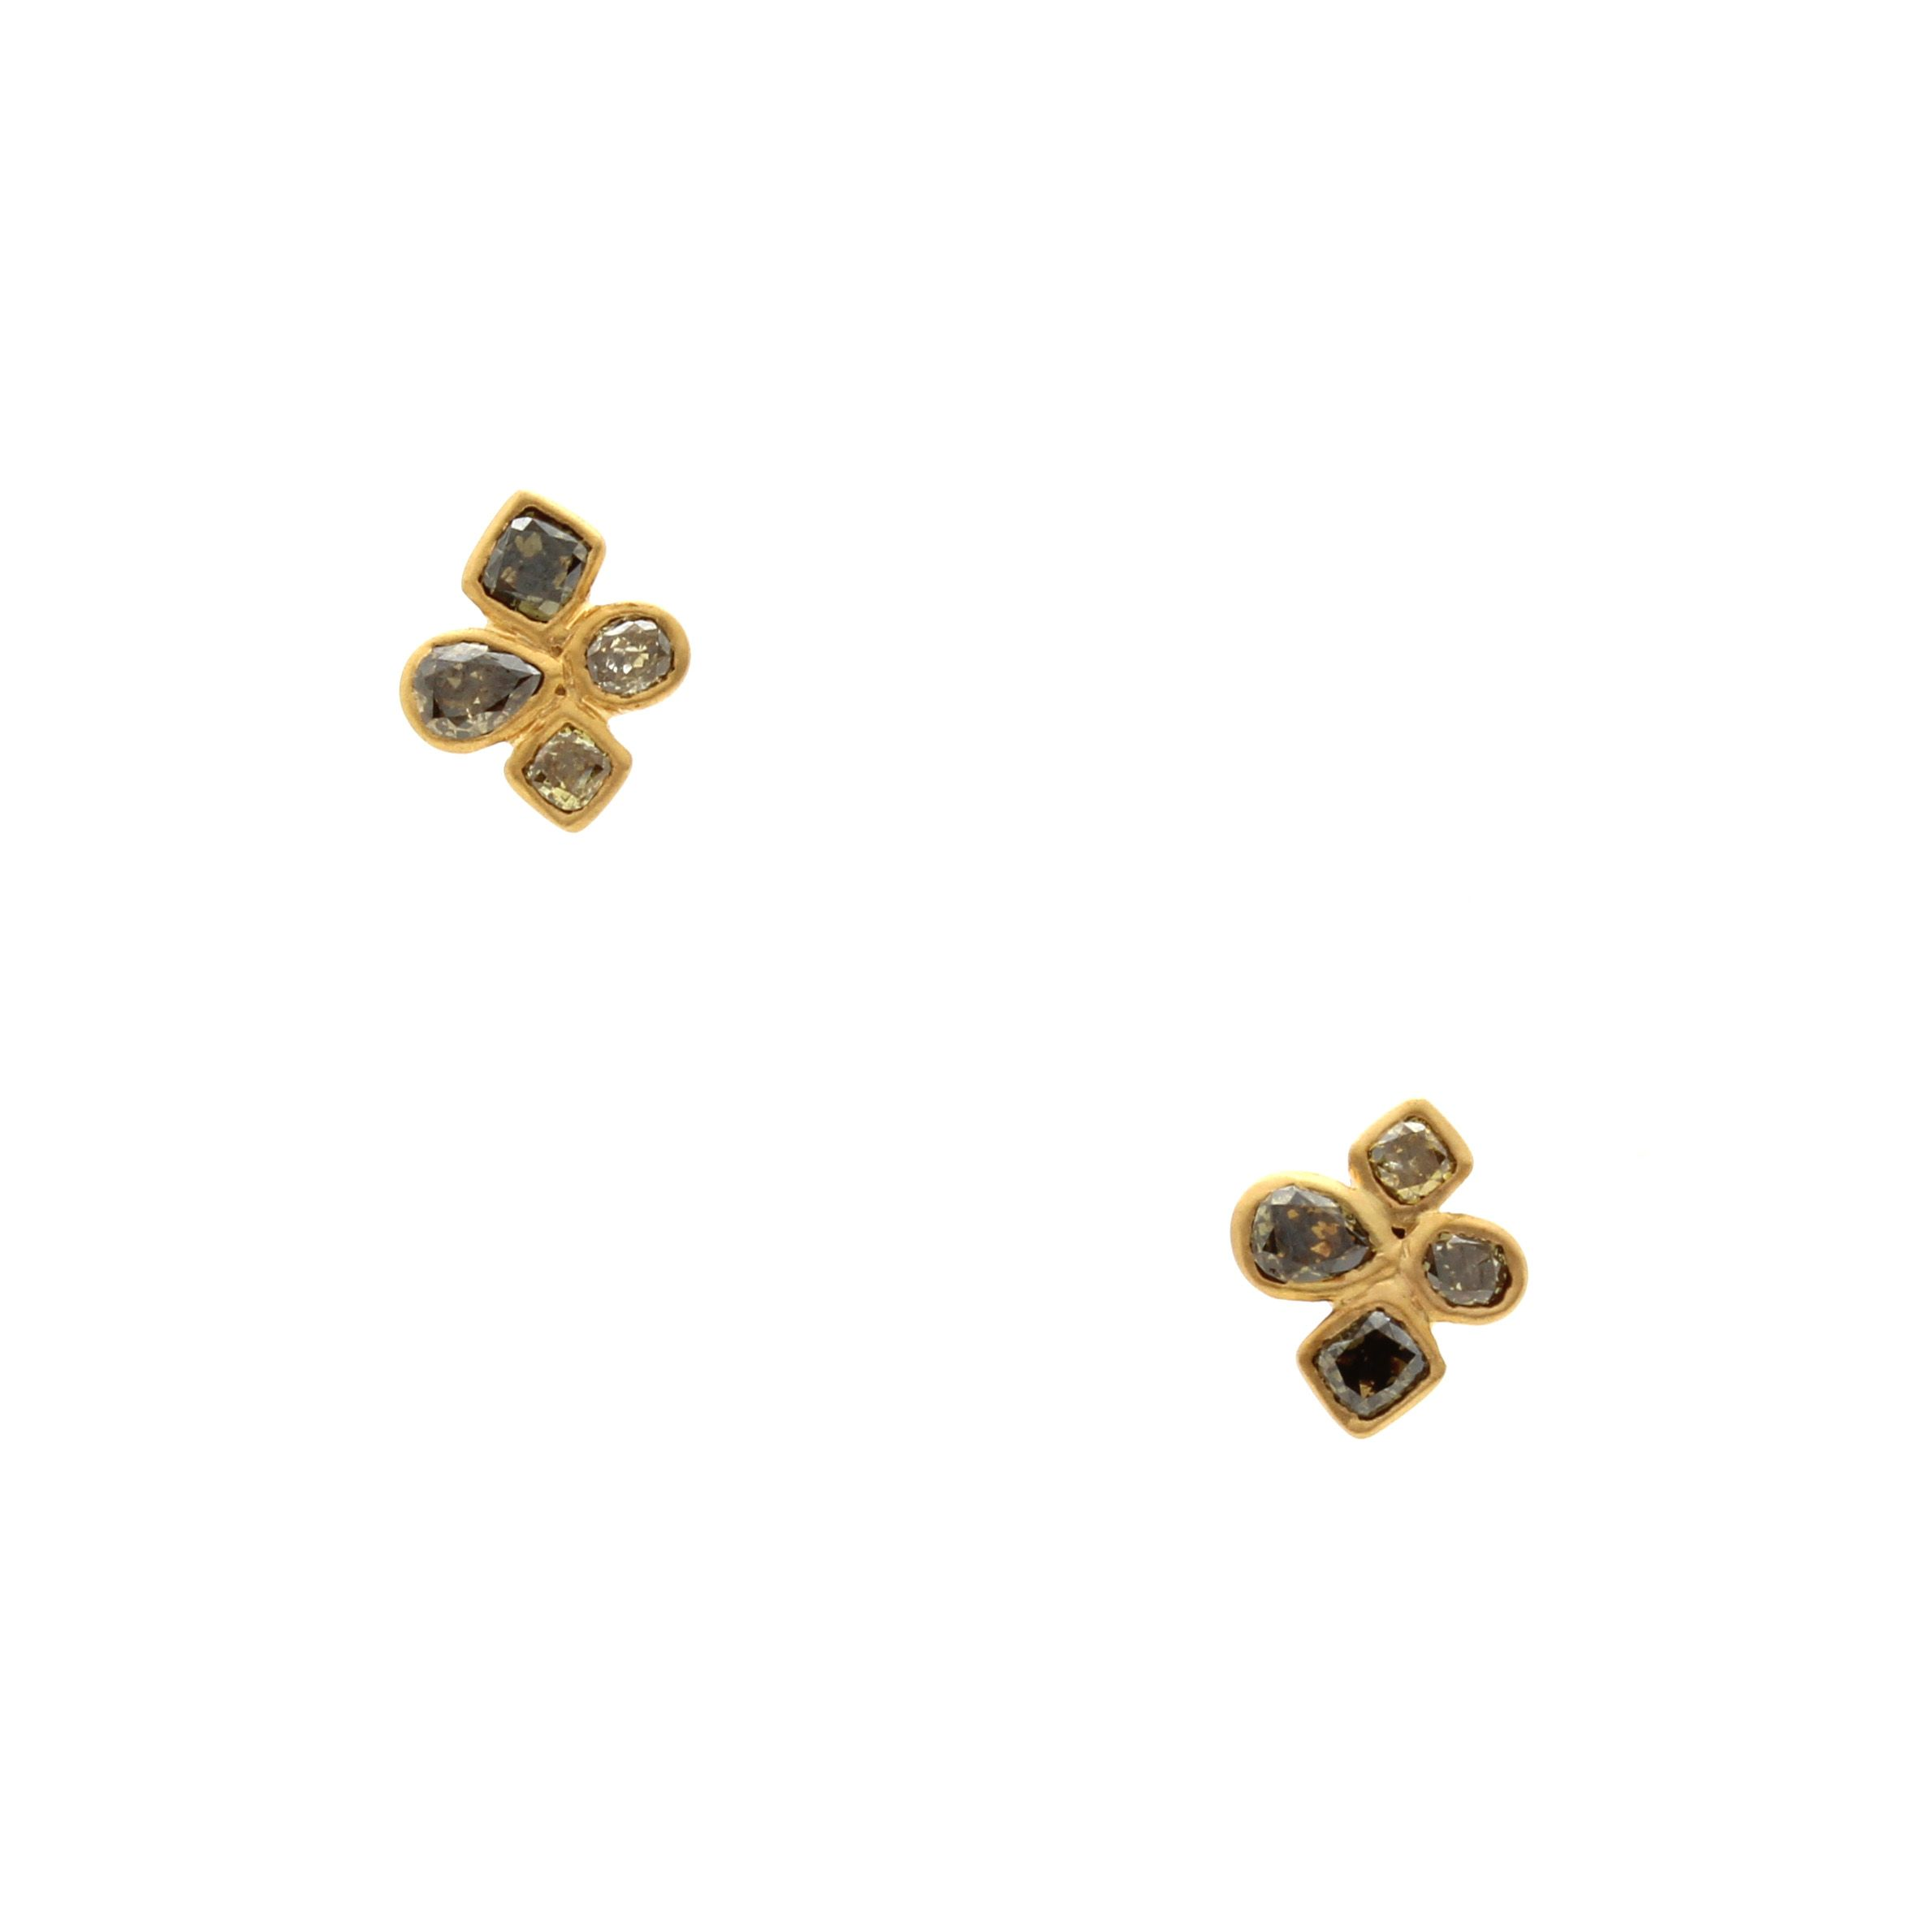 D for Diamond Clover Stud Earrings gQFeFB2